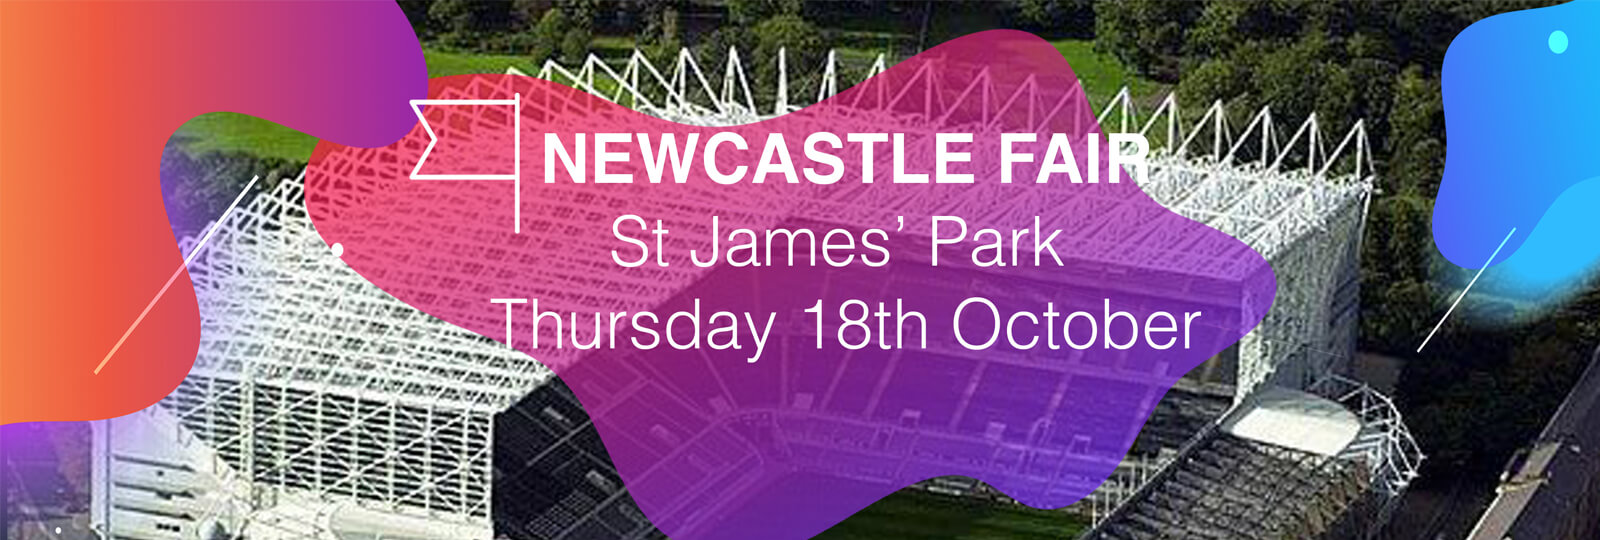 Newcastle Fair